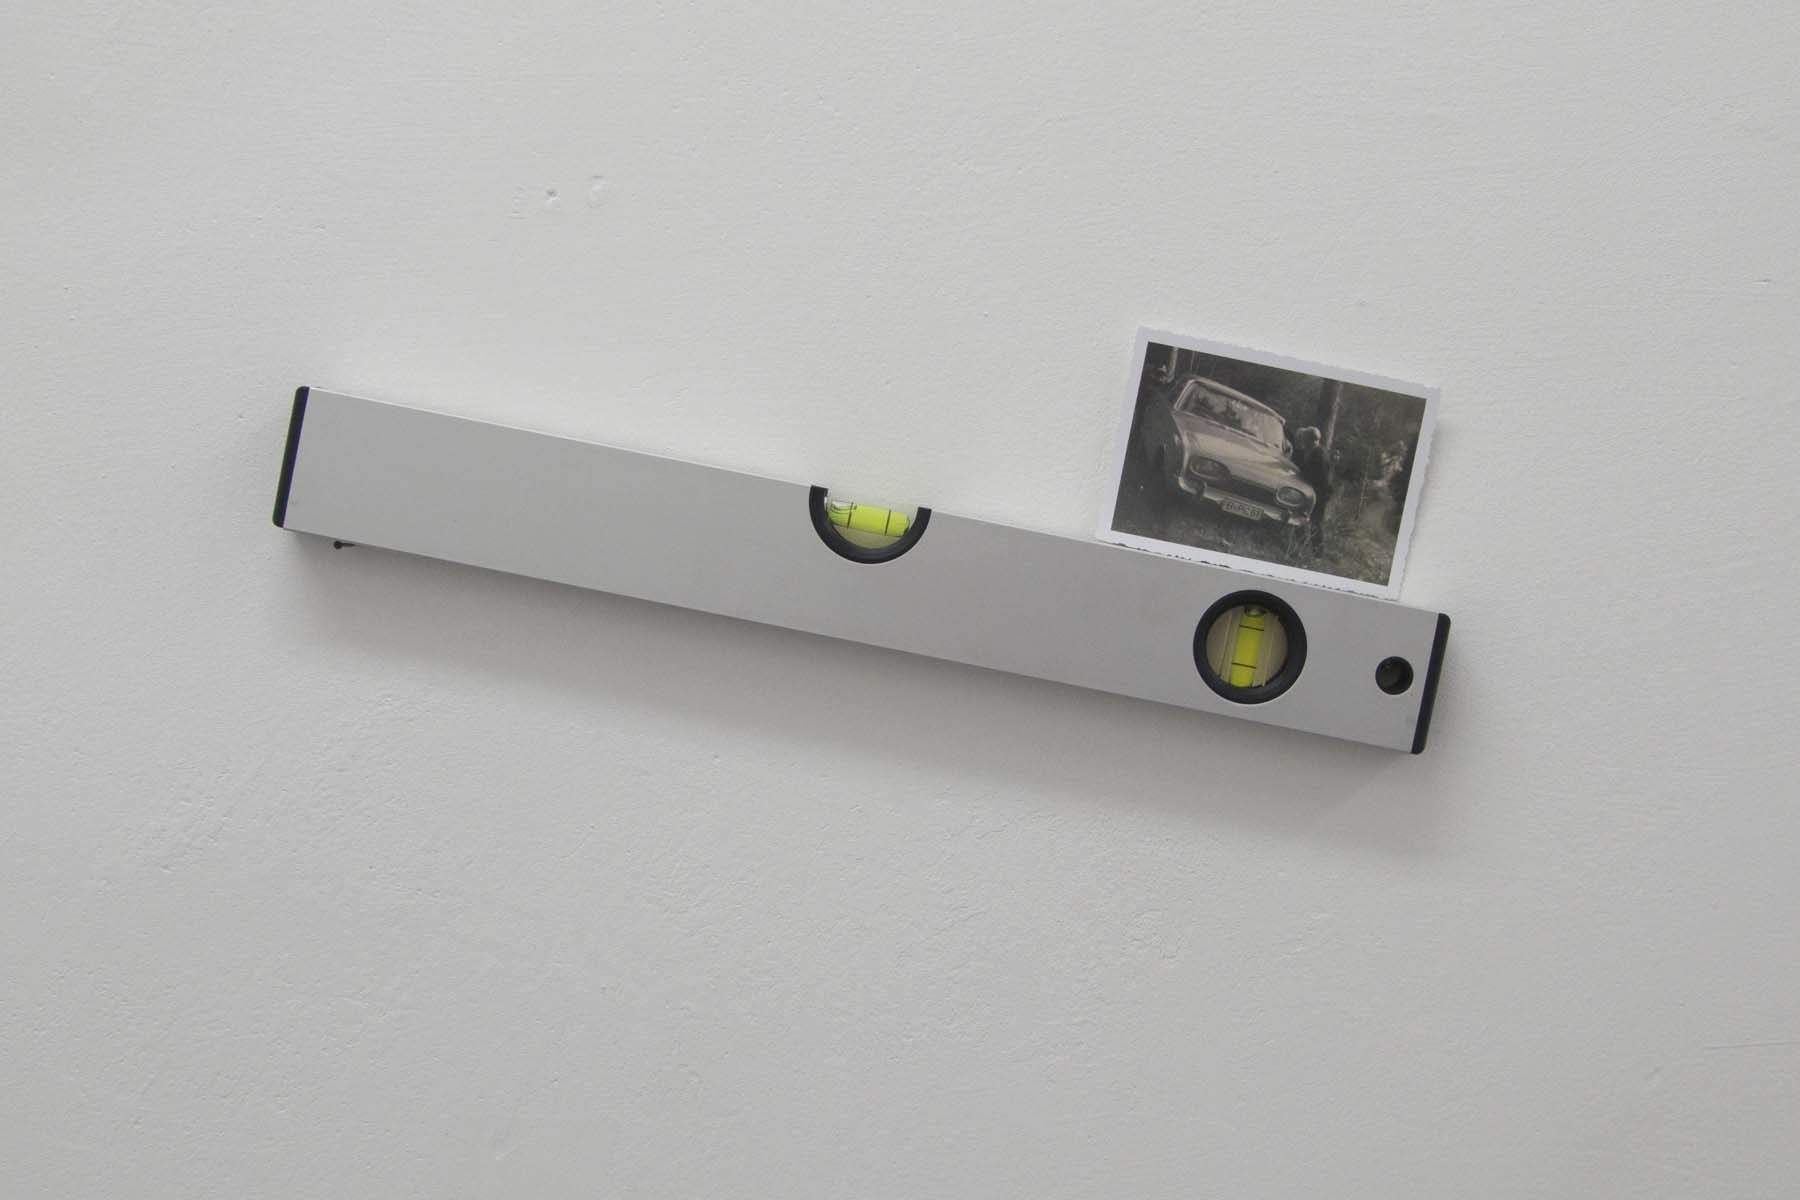 N. Genovese, Sonic or liquid, I don't know, 2010, digital print and spirit level, 39 x 17 x 2 cm